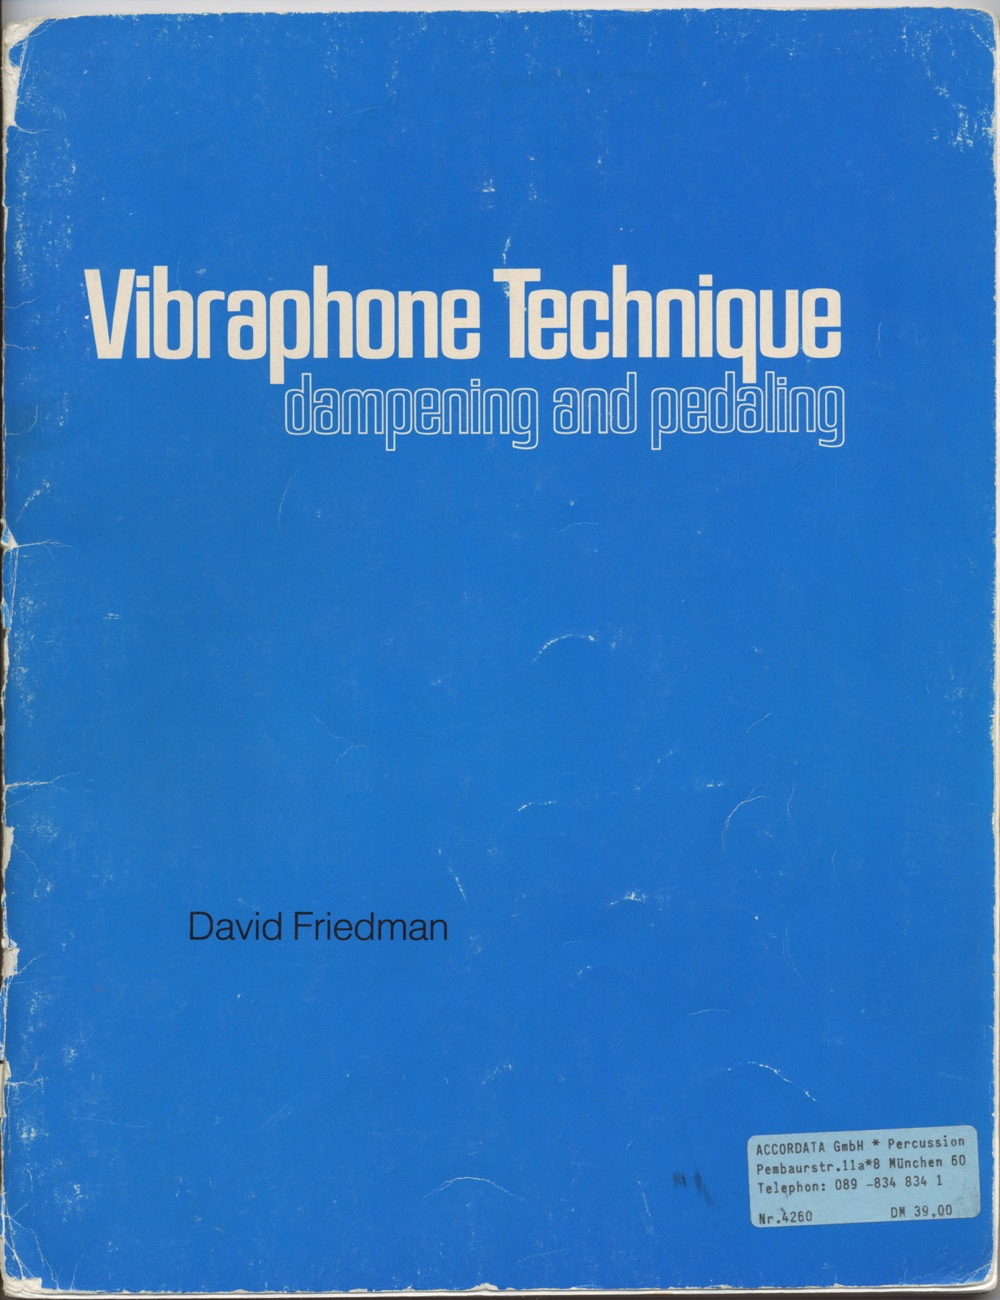 Vibraphone Technique · David Friedman